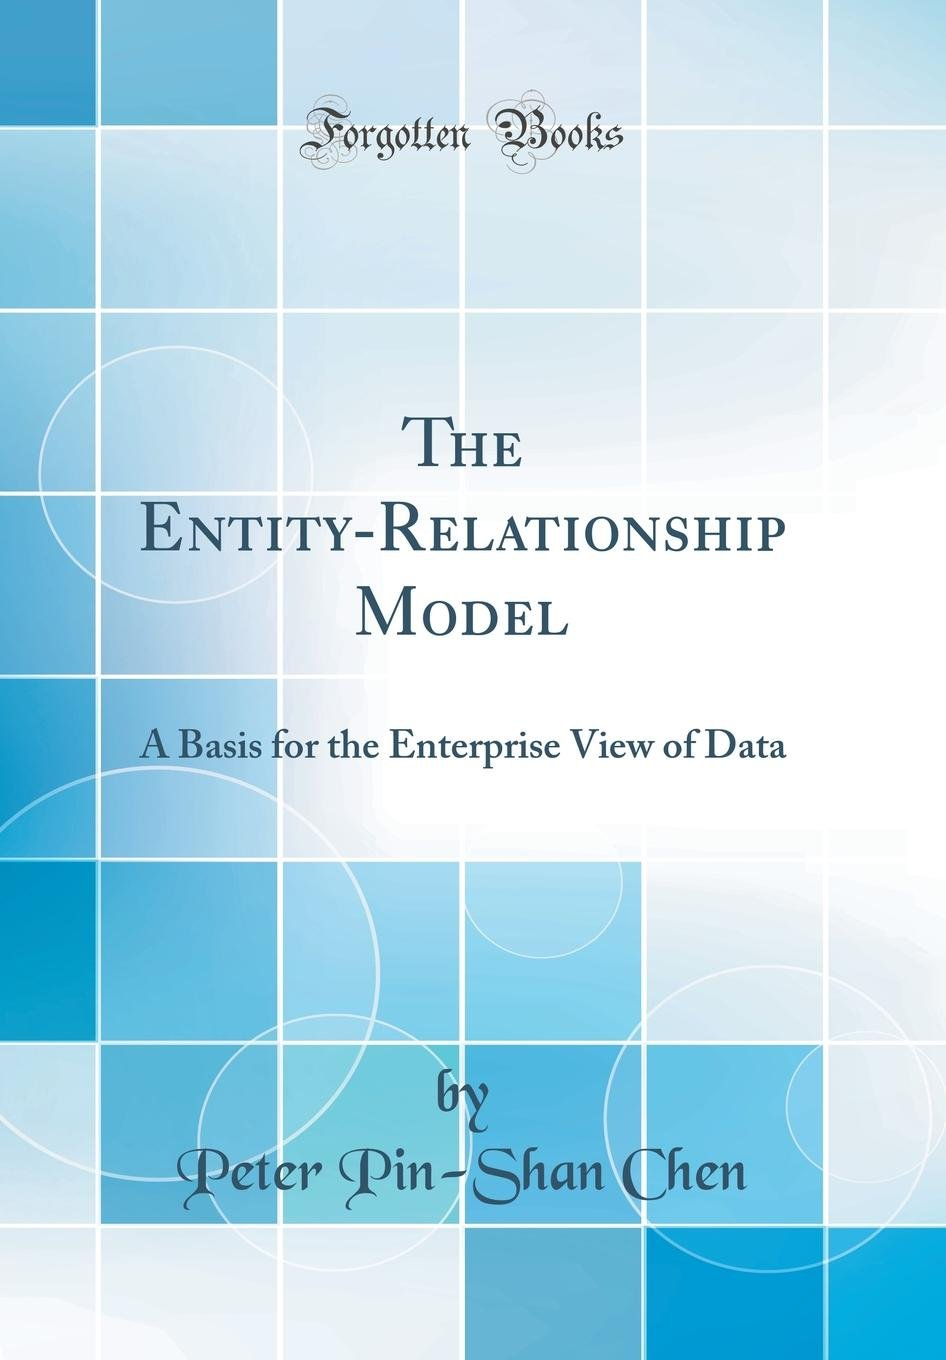 The Entity-Relationship Model: A Basis for the Enterprise View of